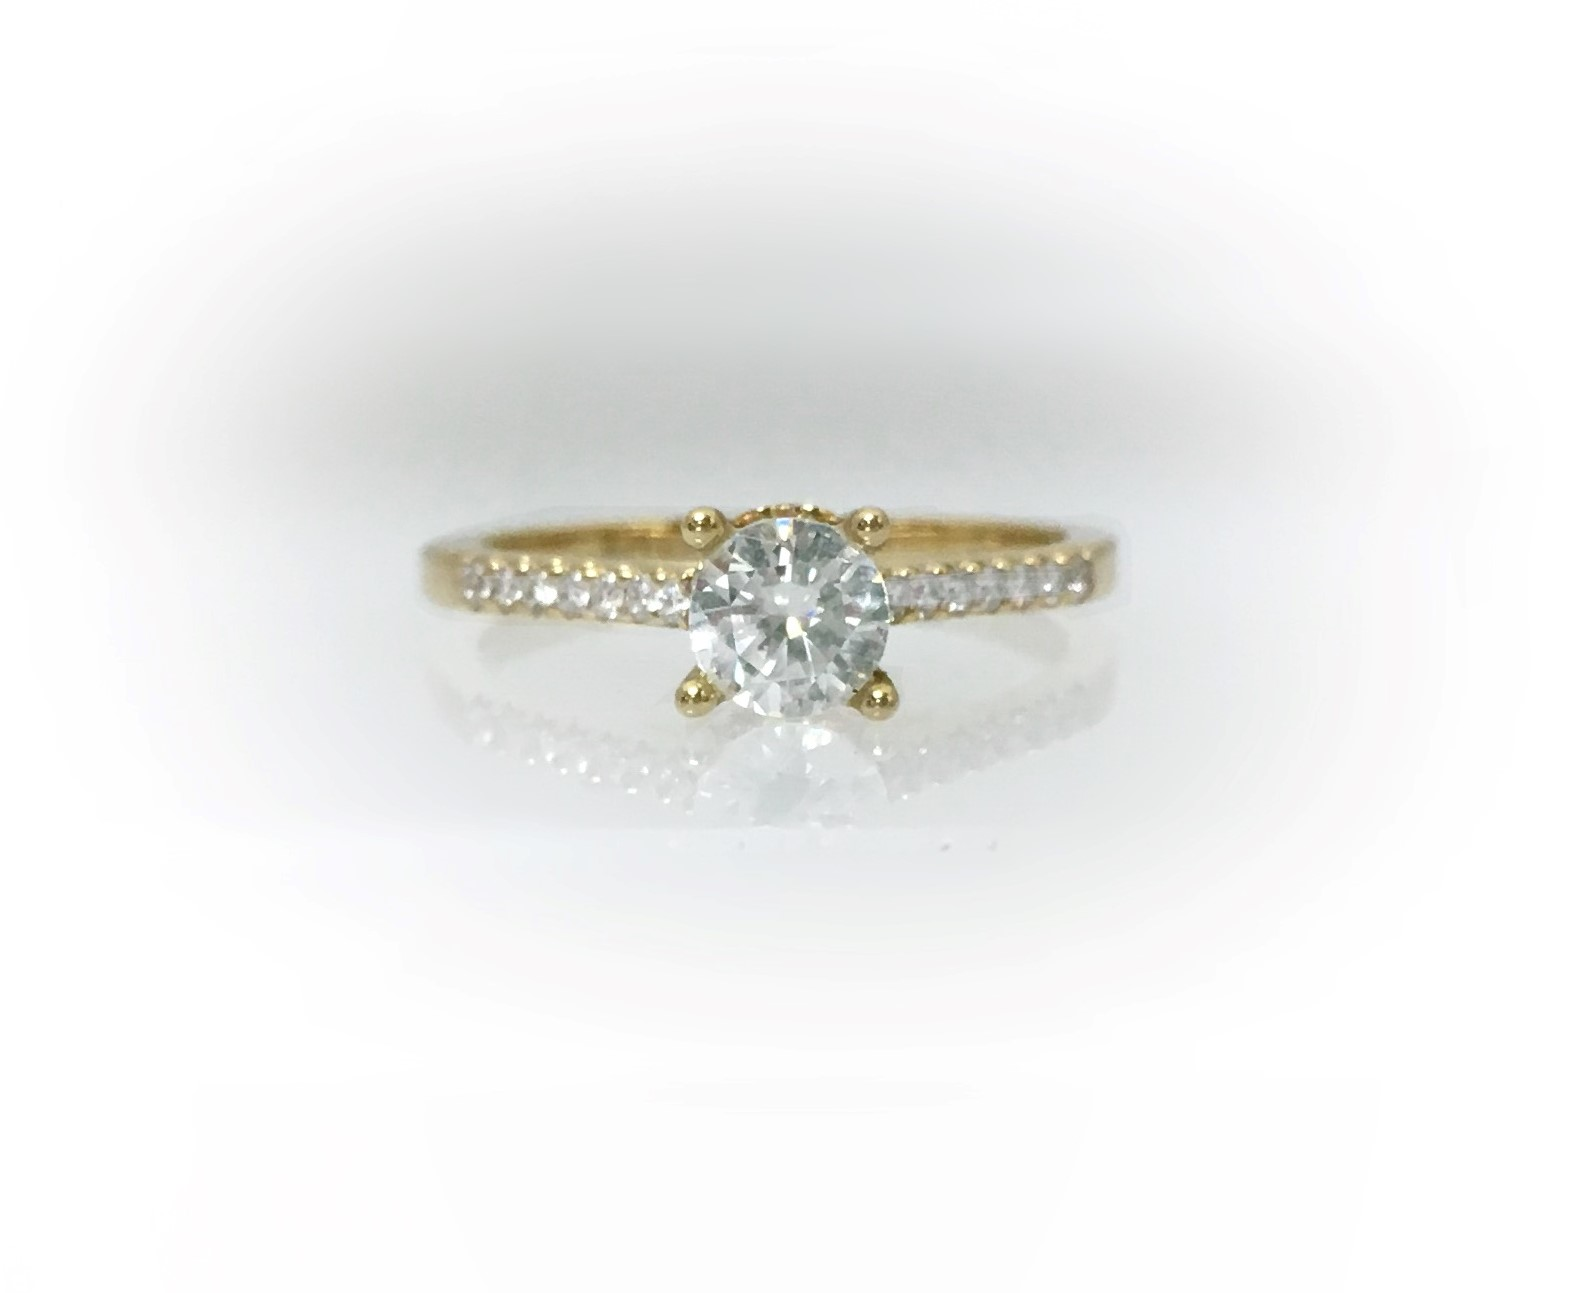 Engagement Ring by Luminar